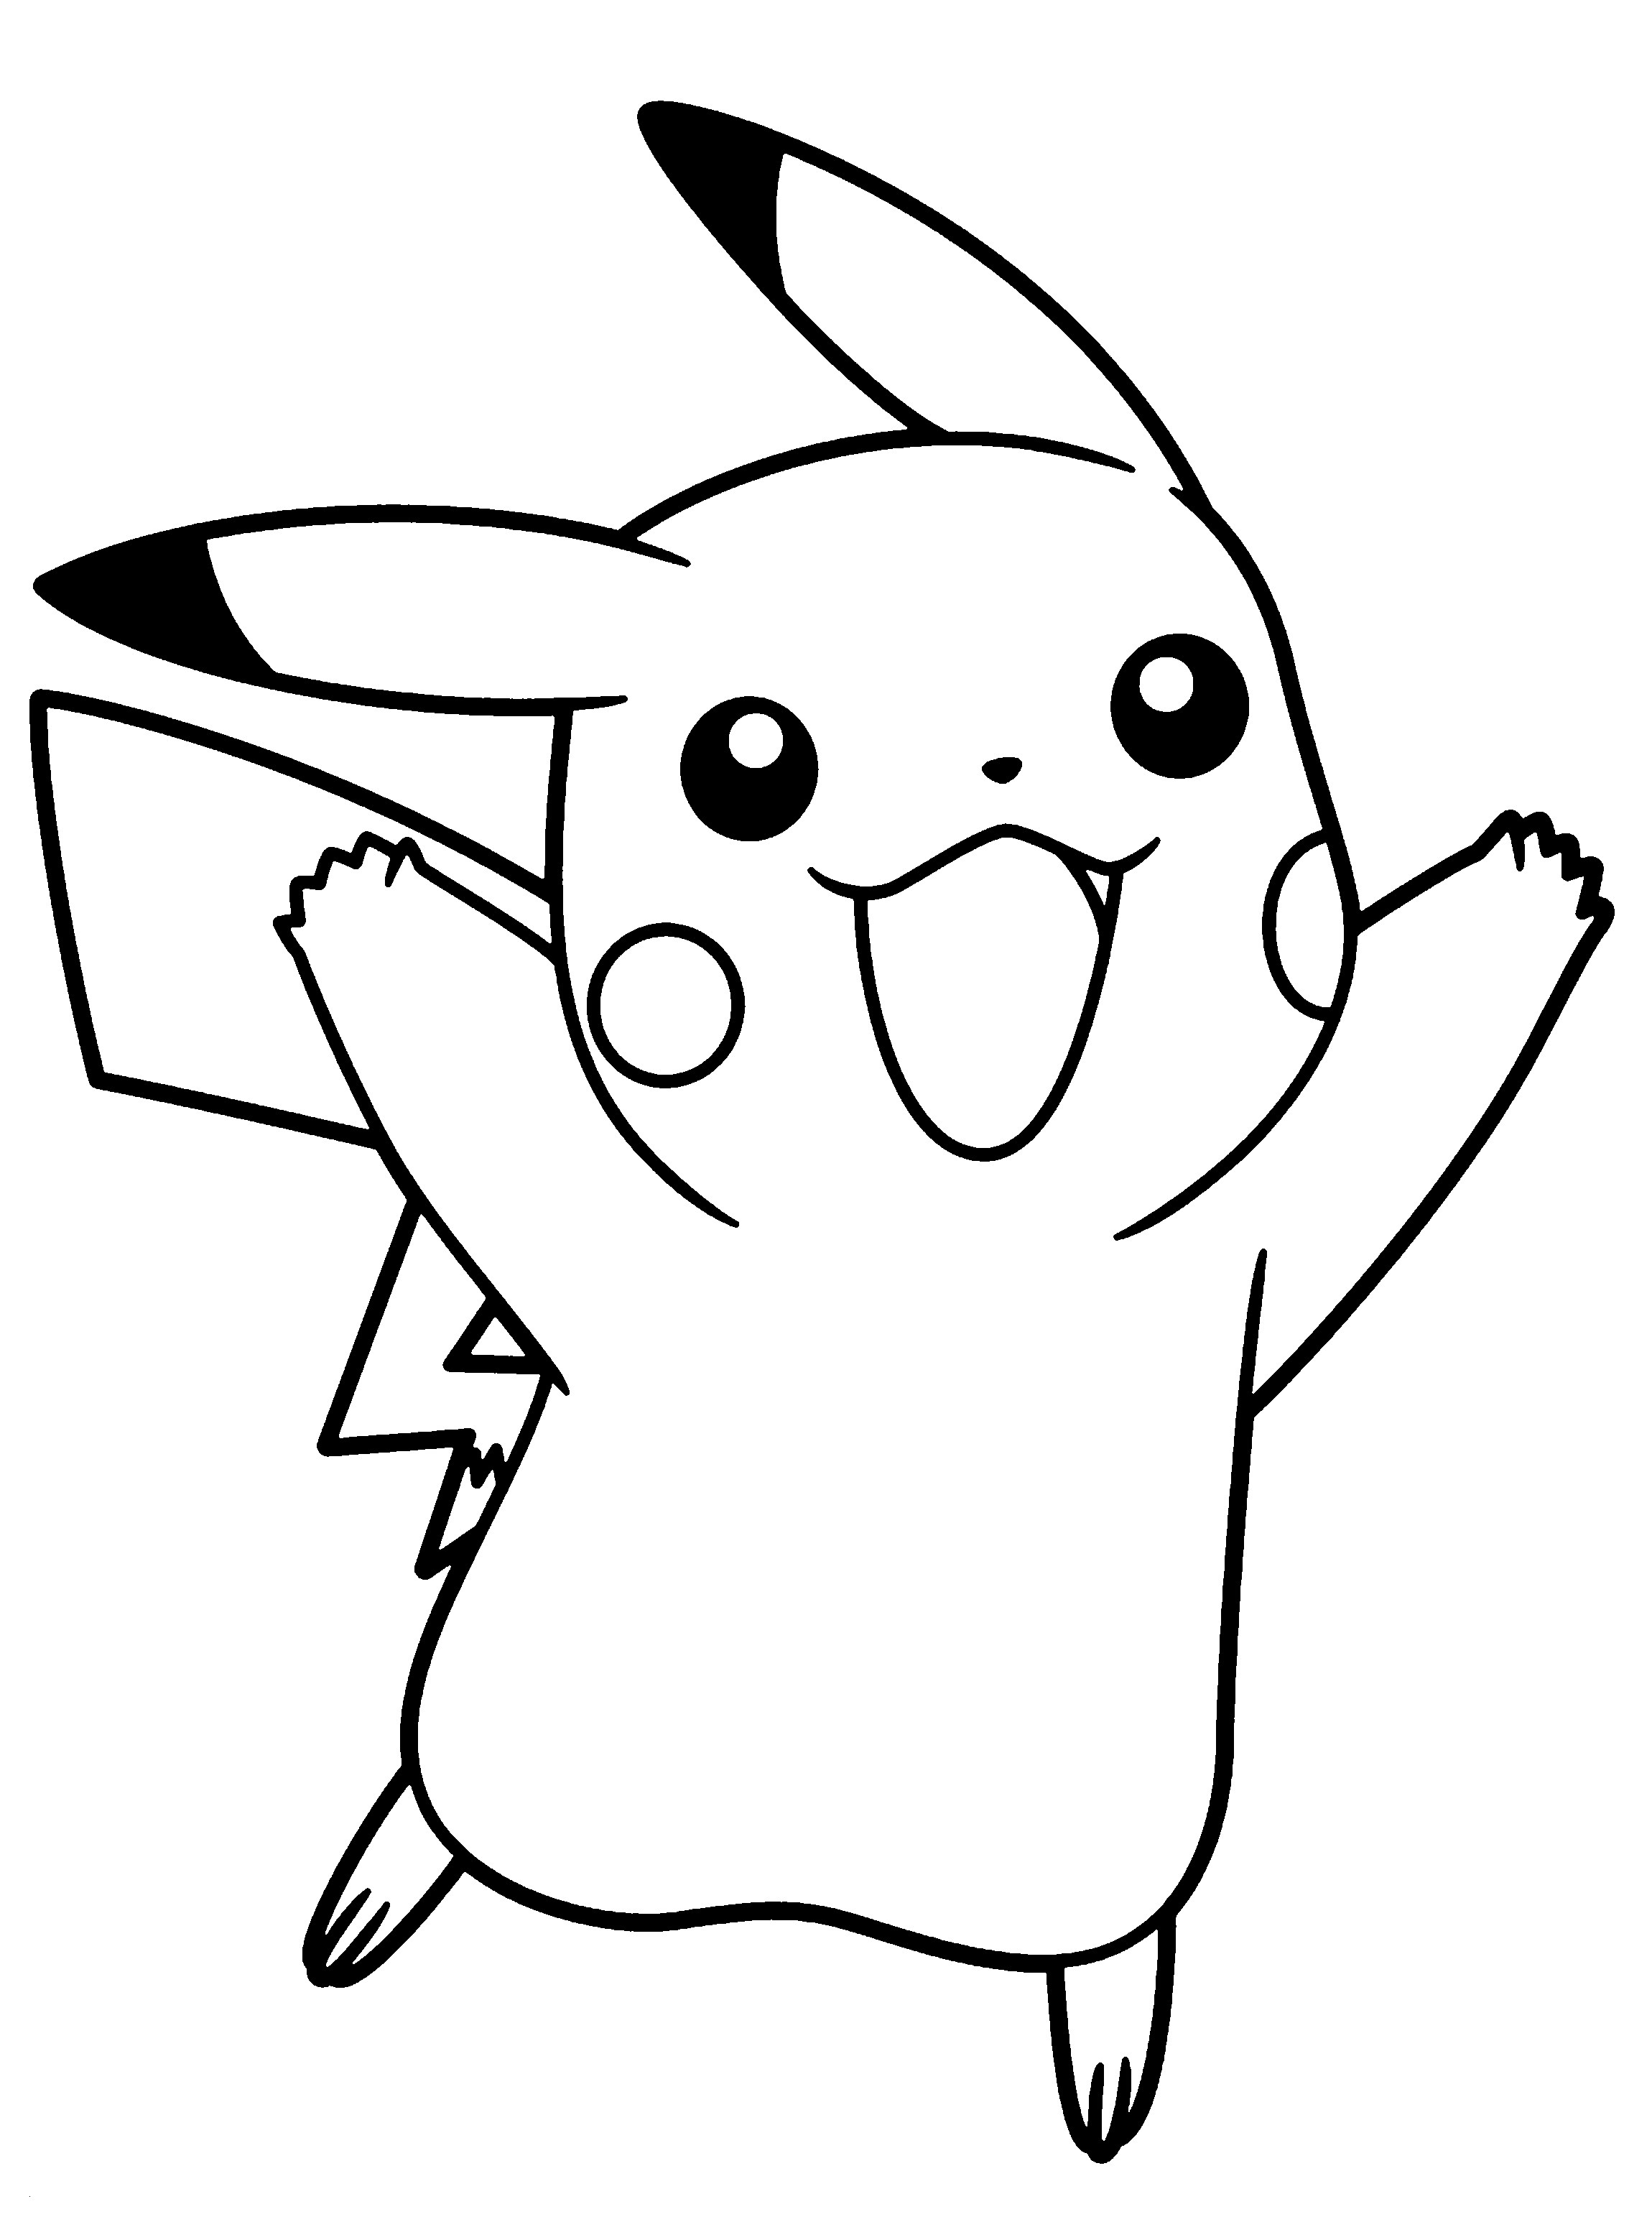 pikachu coloring pages Collection-Pikachu coloring pages to and print for free 4-i